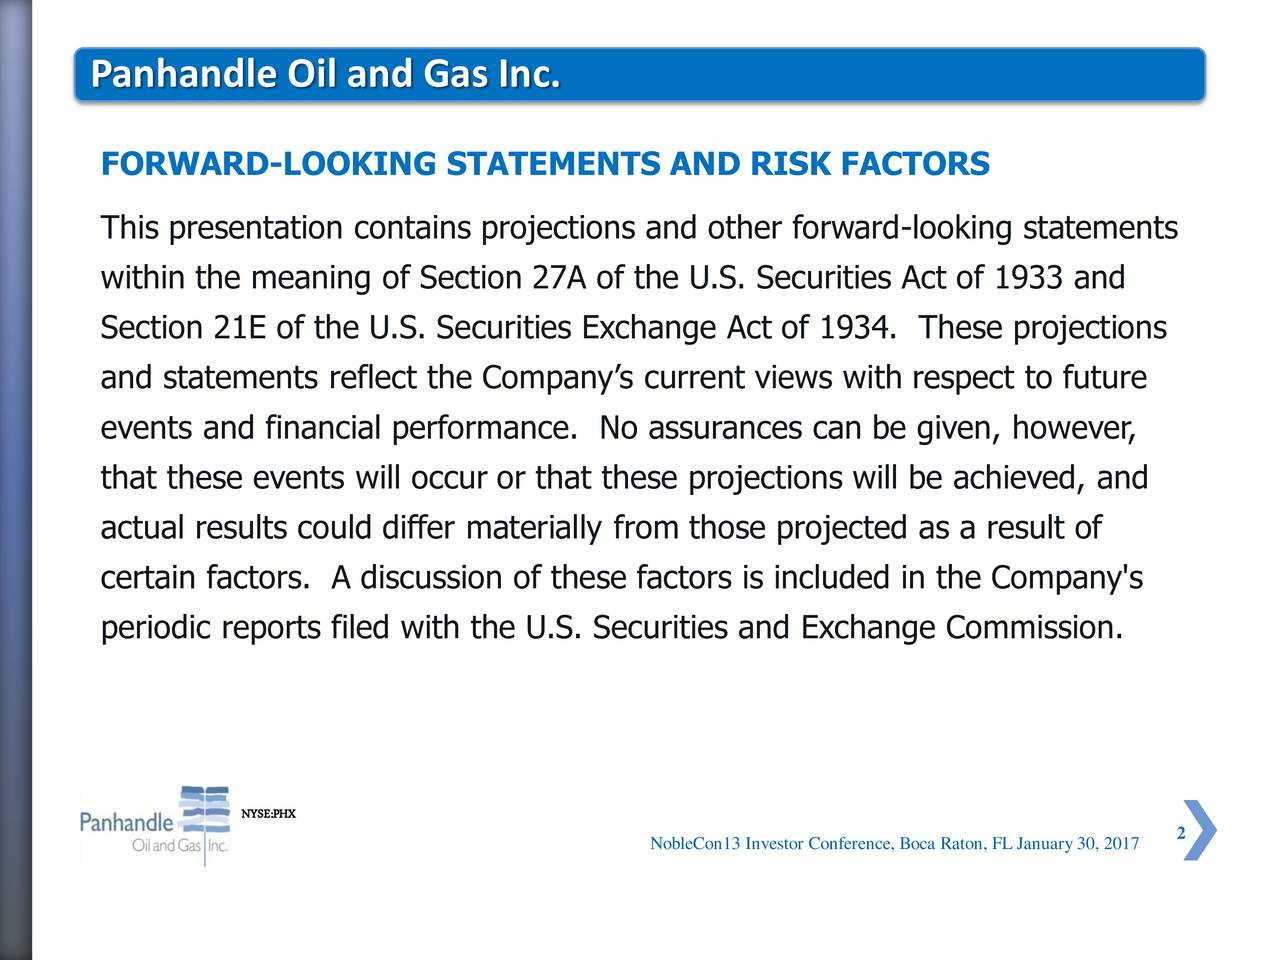 FORWARD-LOOKING STATEMENTS AND RISK FACTORS This presentation contains projections and other forward-looking statements within the meaning of Section 27A of the U.S. Securities Act of 1933 and Section 21E of the U.S. Securities Exchange Act of 1934. These projections and statements reflect the Companys current views with respect to future events and financial performance. No assurances can be given, however, that these events will occur or that these projections will be achieved, and actual results could differ materially from those projected as a result of certain factors. A discussion of these factors is included in the Company's periodic reports filed with the U.S. Securities and Exchange Commission. NYSE:PHX NobleCon13 Investor Conference, Boca Raton, FL January30, 2017